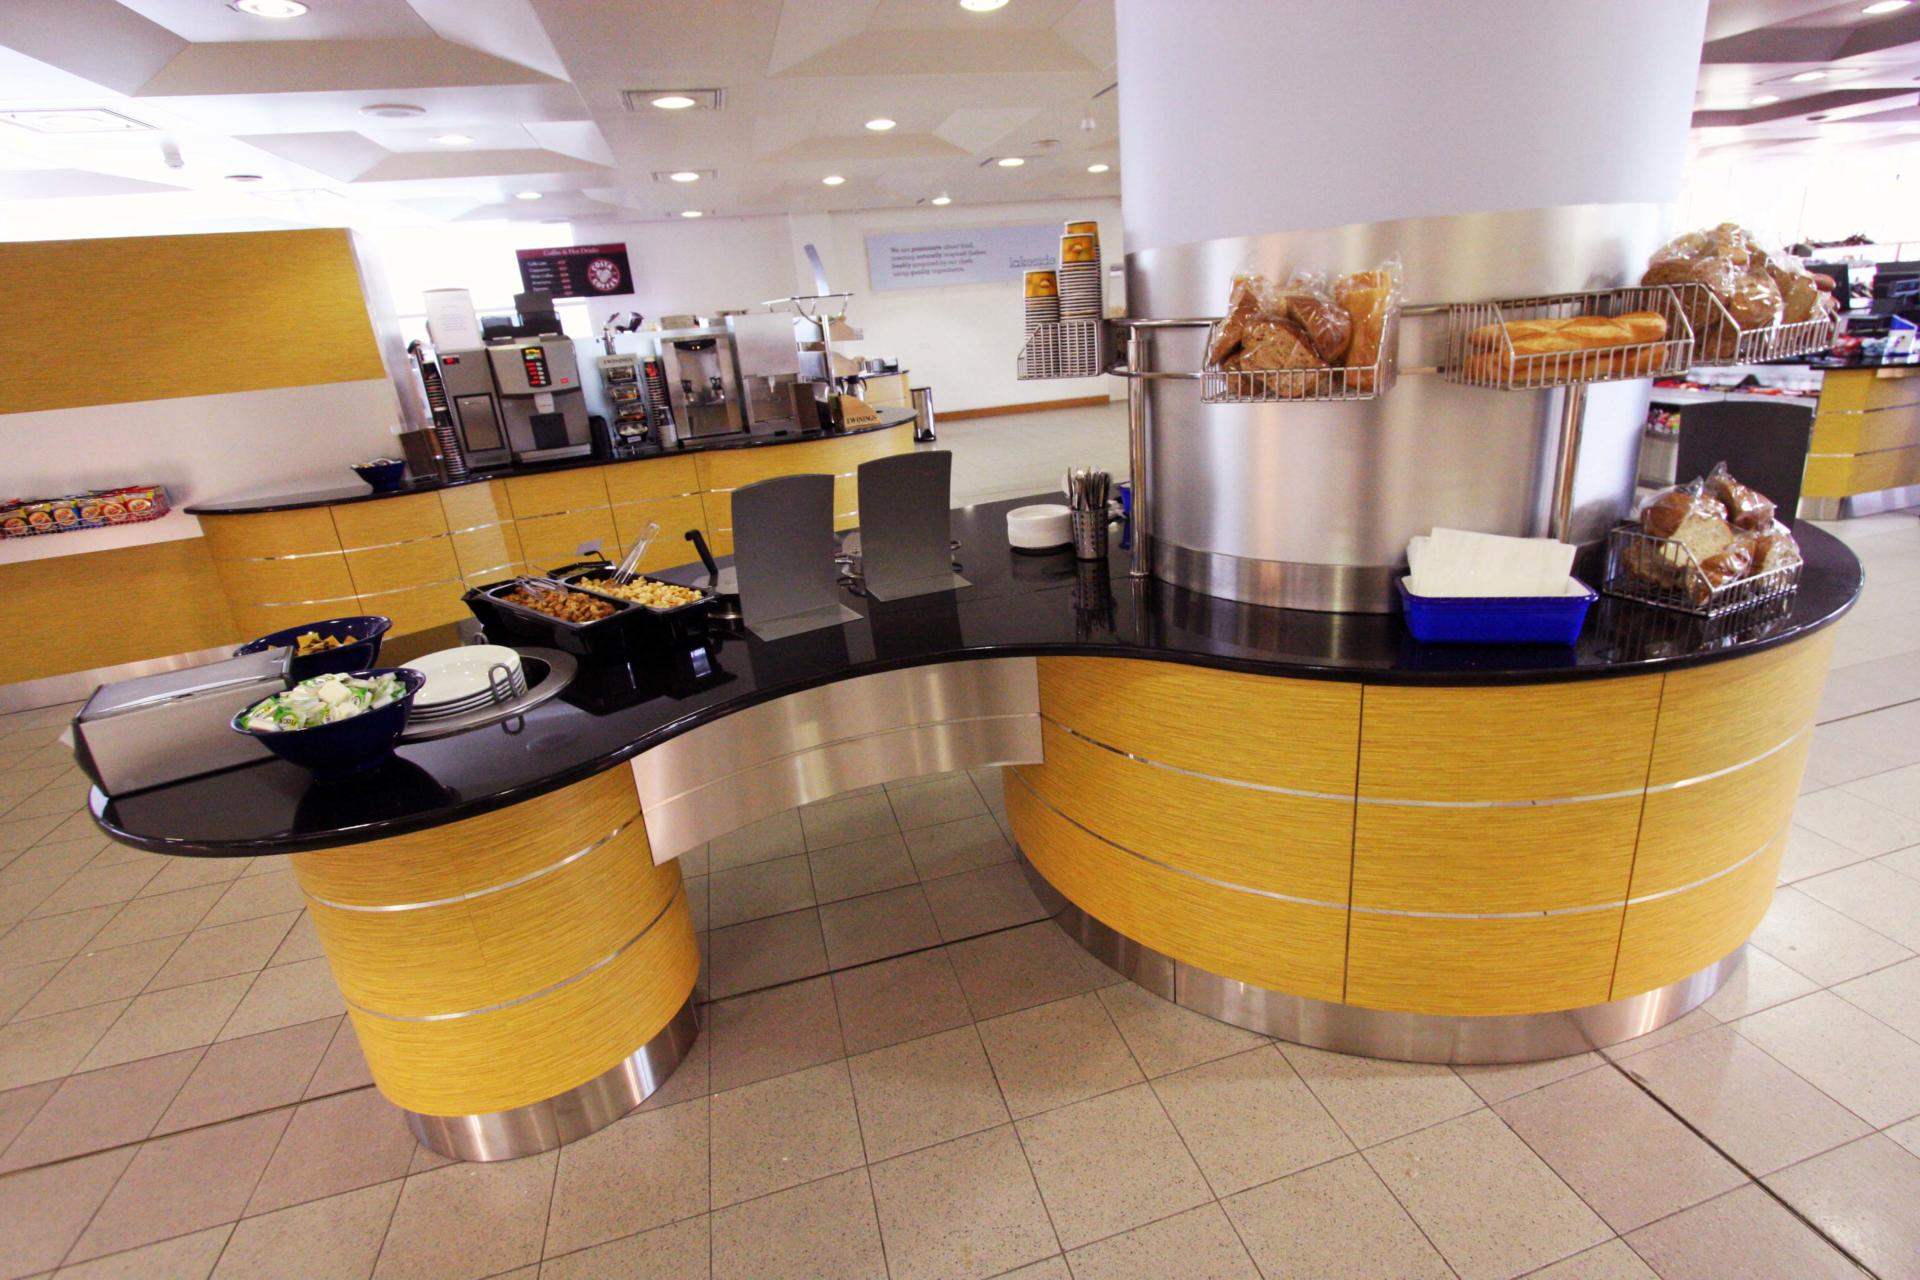 nationwide_swindon_staff restaurant_servery (22)